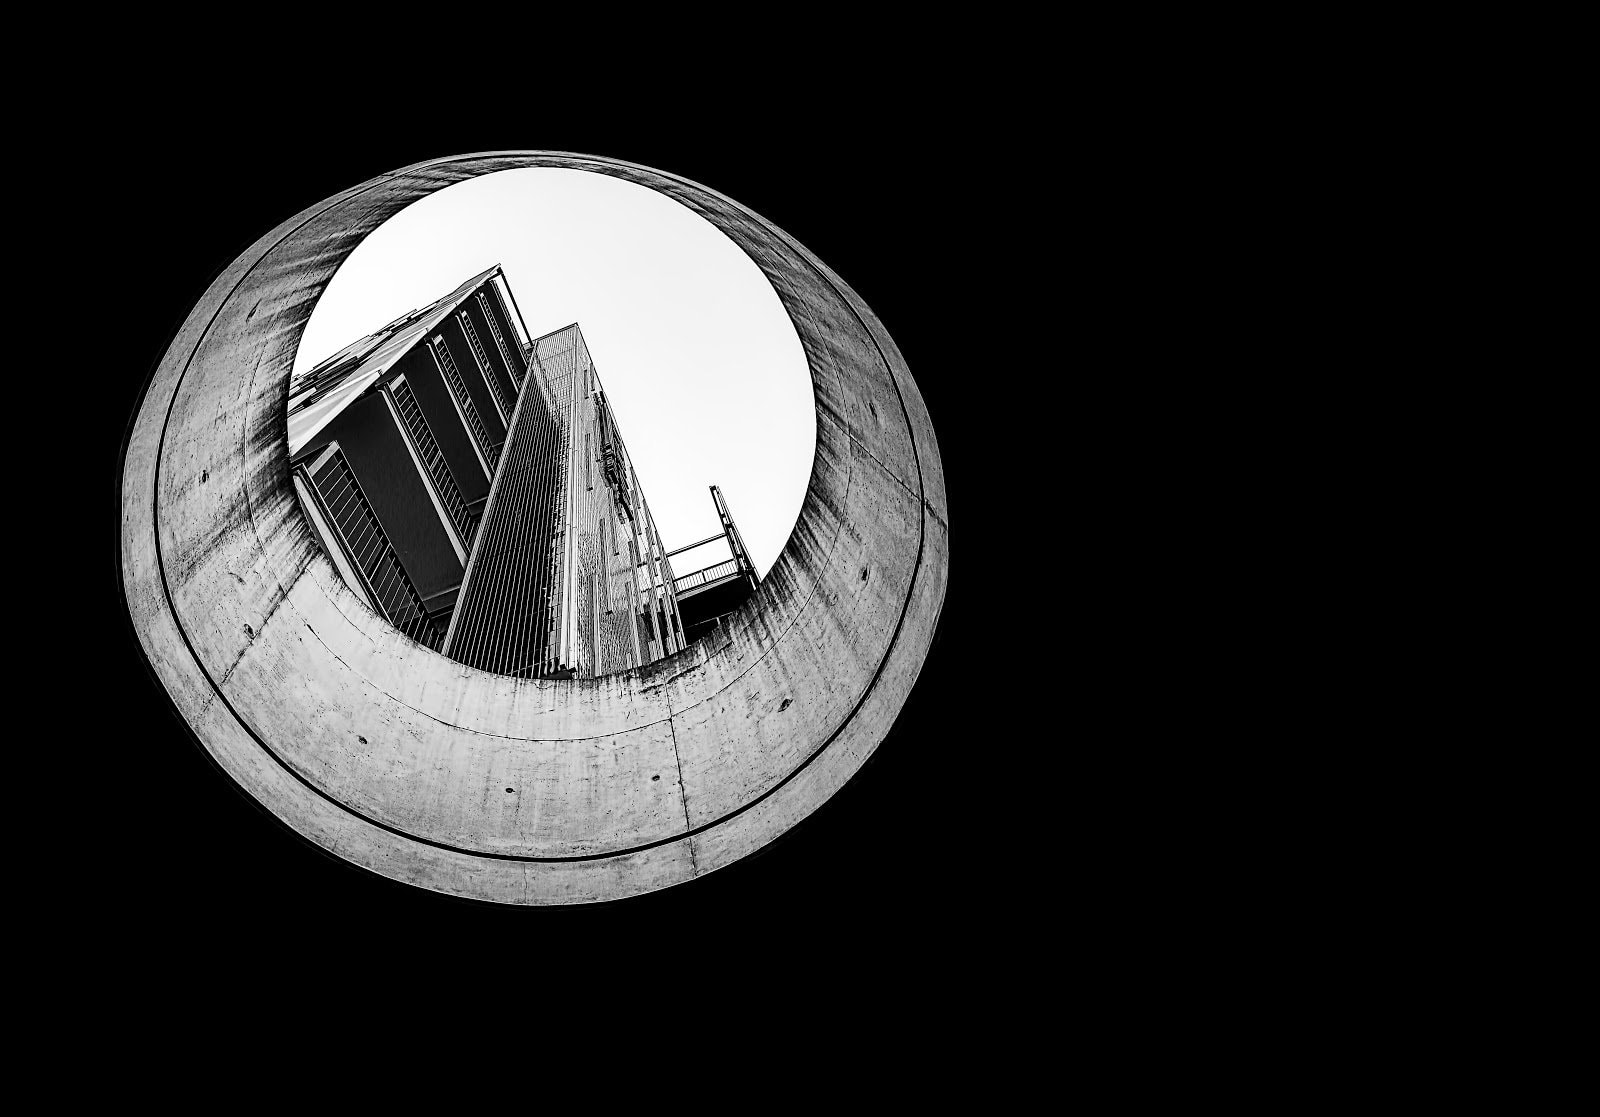 Monochrome photo of a building seen through a hole by Ricardo Gomez Angel